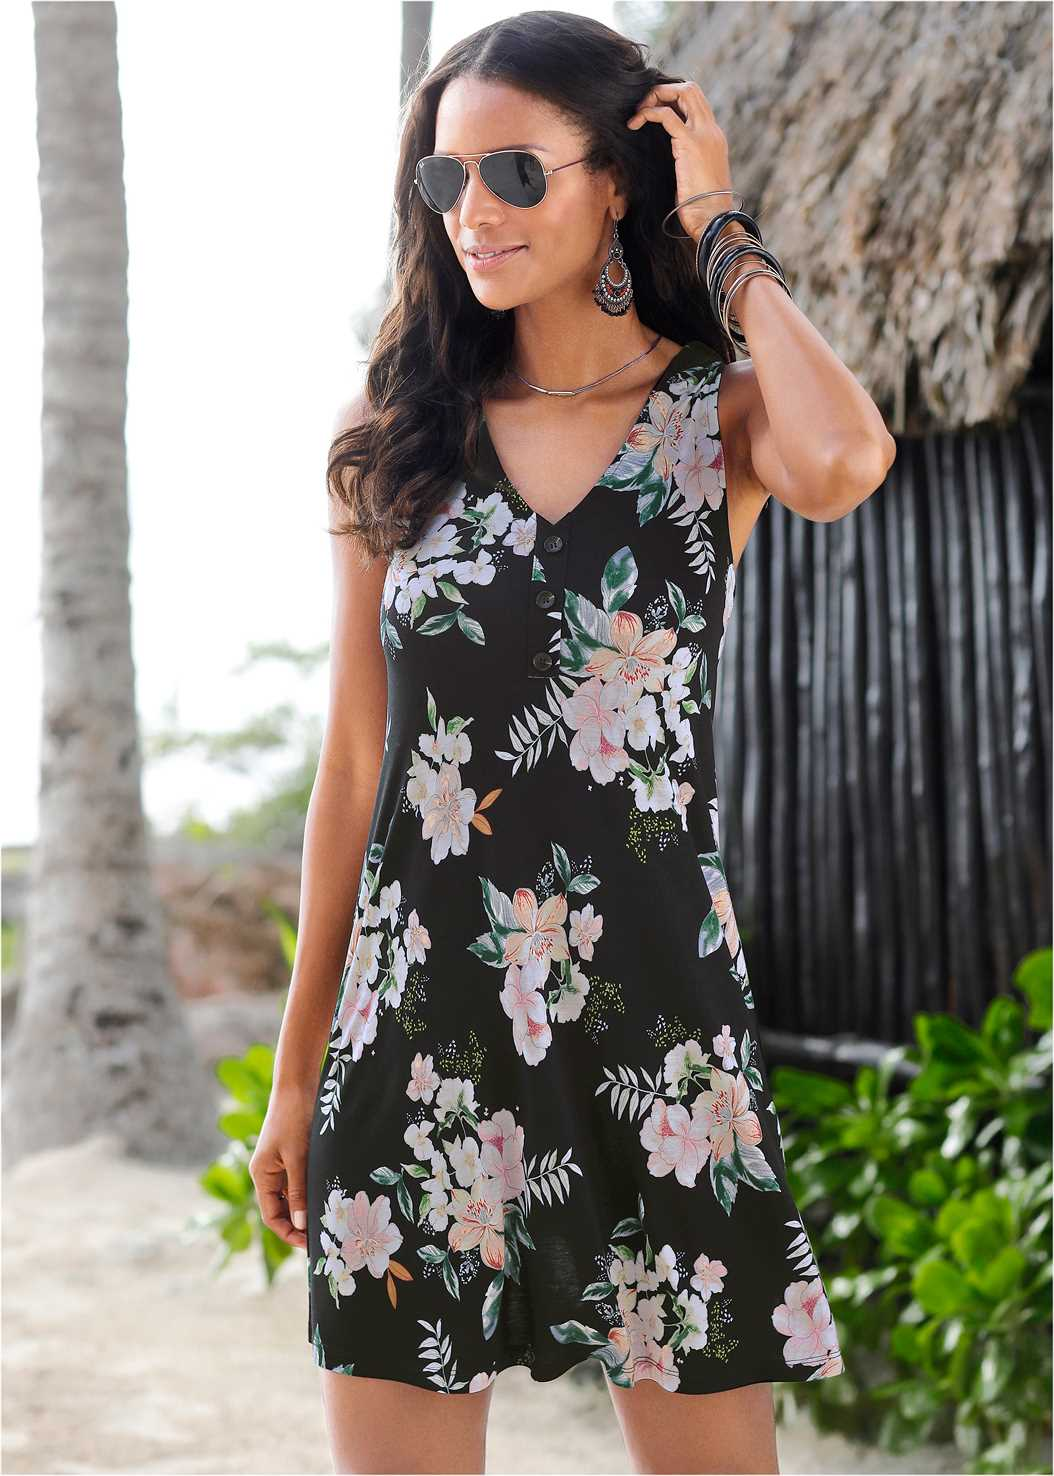 Button Detail Floral Dress,Push Up Bra Buy 2 For $40,Embellished Low Wedges